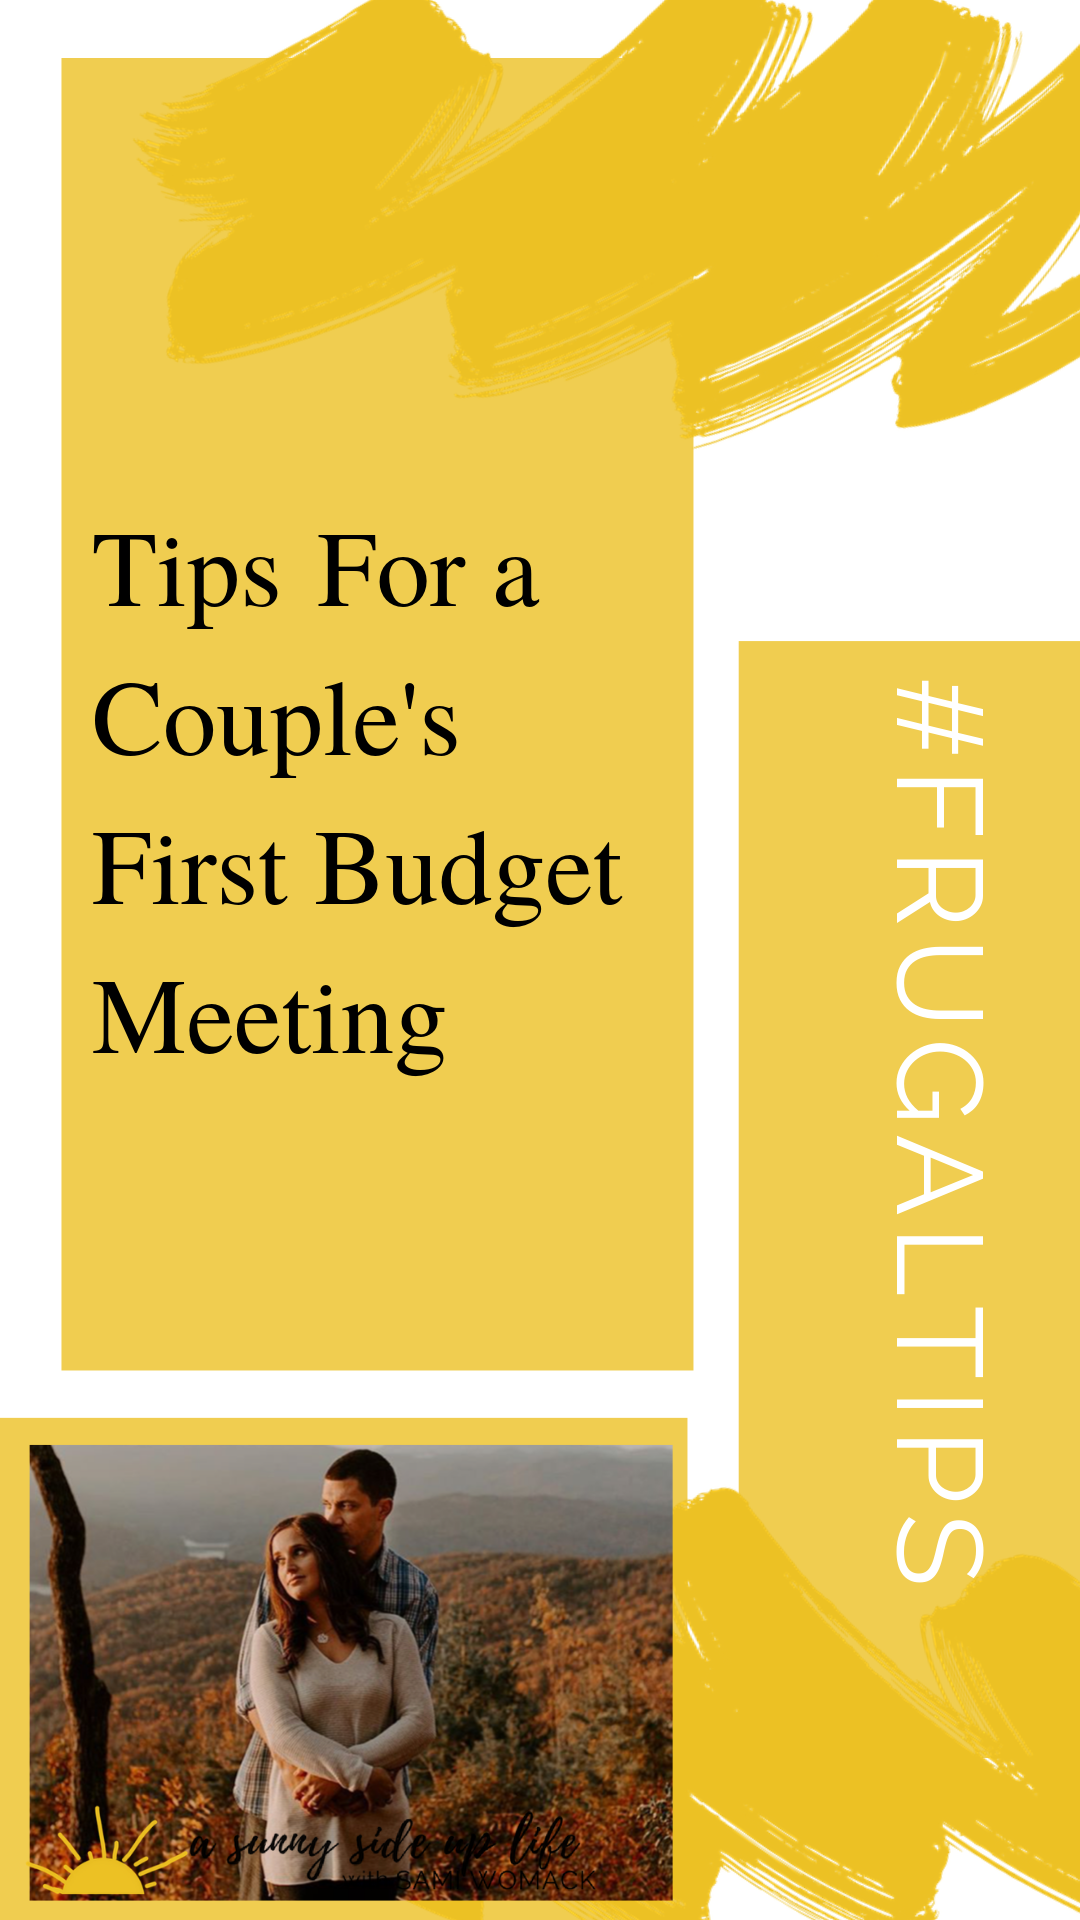 couple's first budget meeting | marriage and money | debt free journey | frugal tips | budgeting | budget | beginner | baby step 1 | baby step 2 | couple | married life